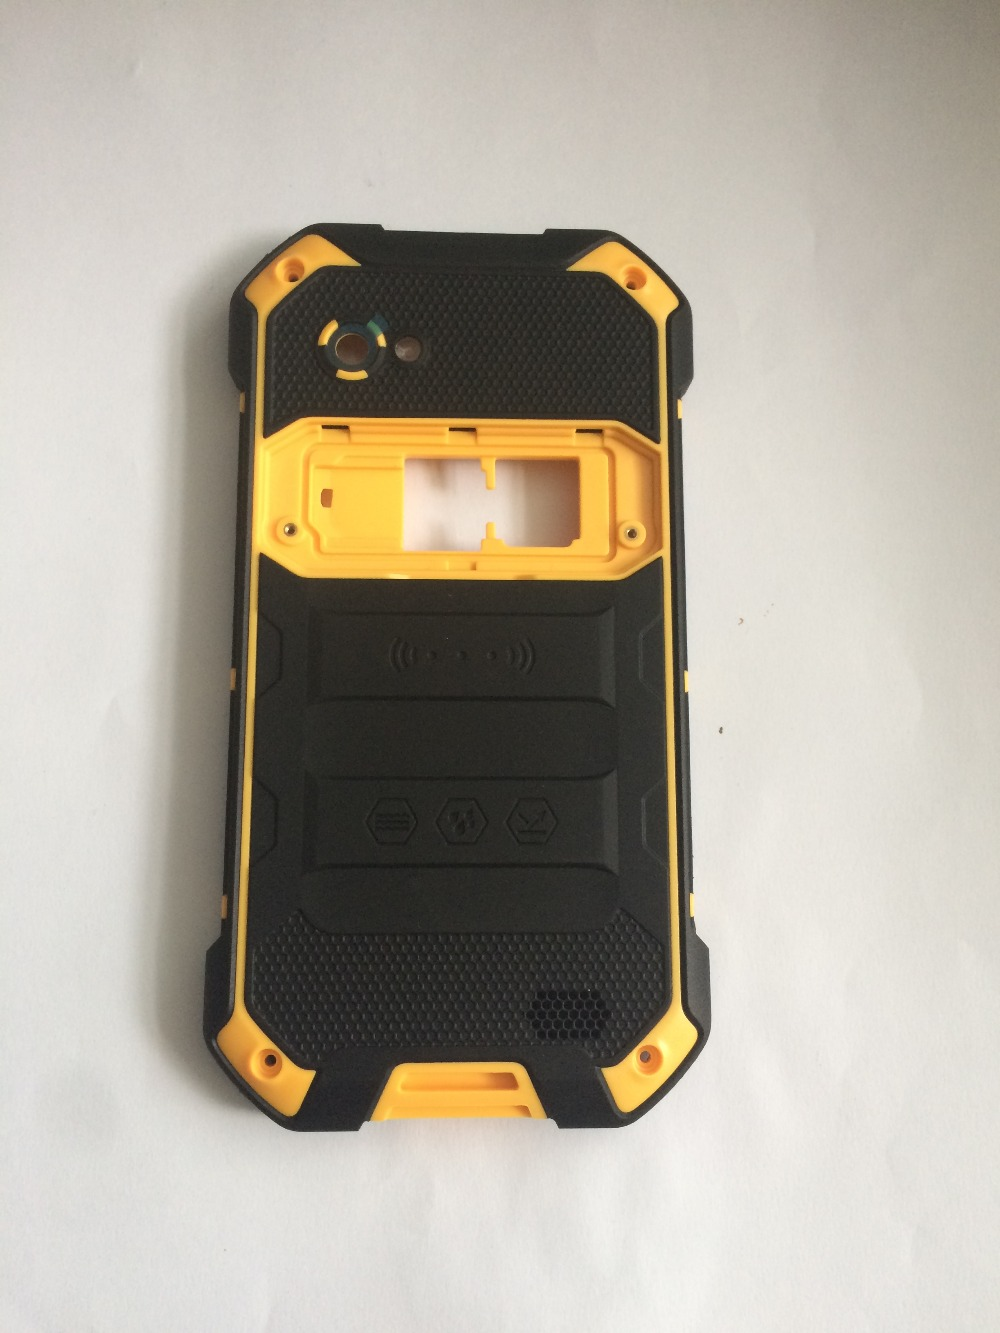 New Blackview BV6000 Battery Cover Back Shell+Loud Speaker For Blackview BV6000S Phone Free Shipping+tracking Number